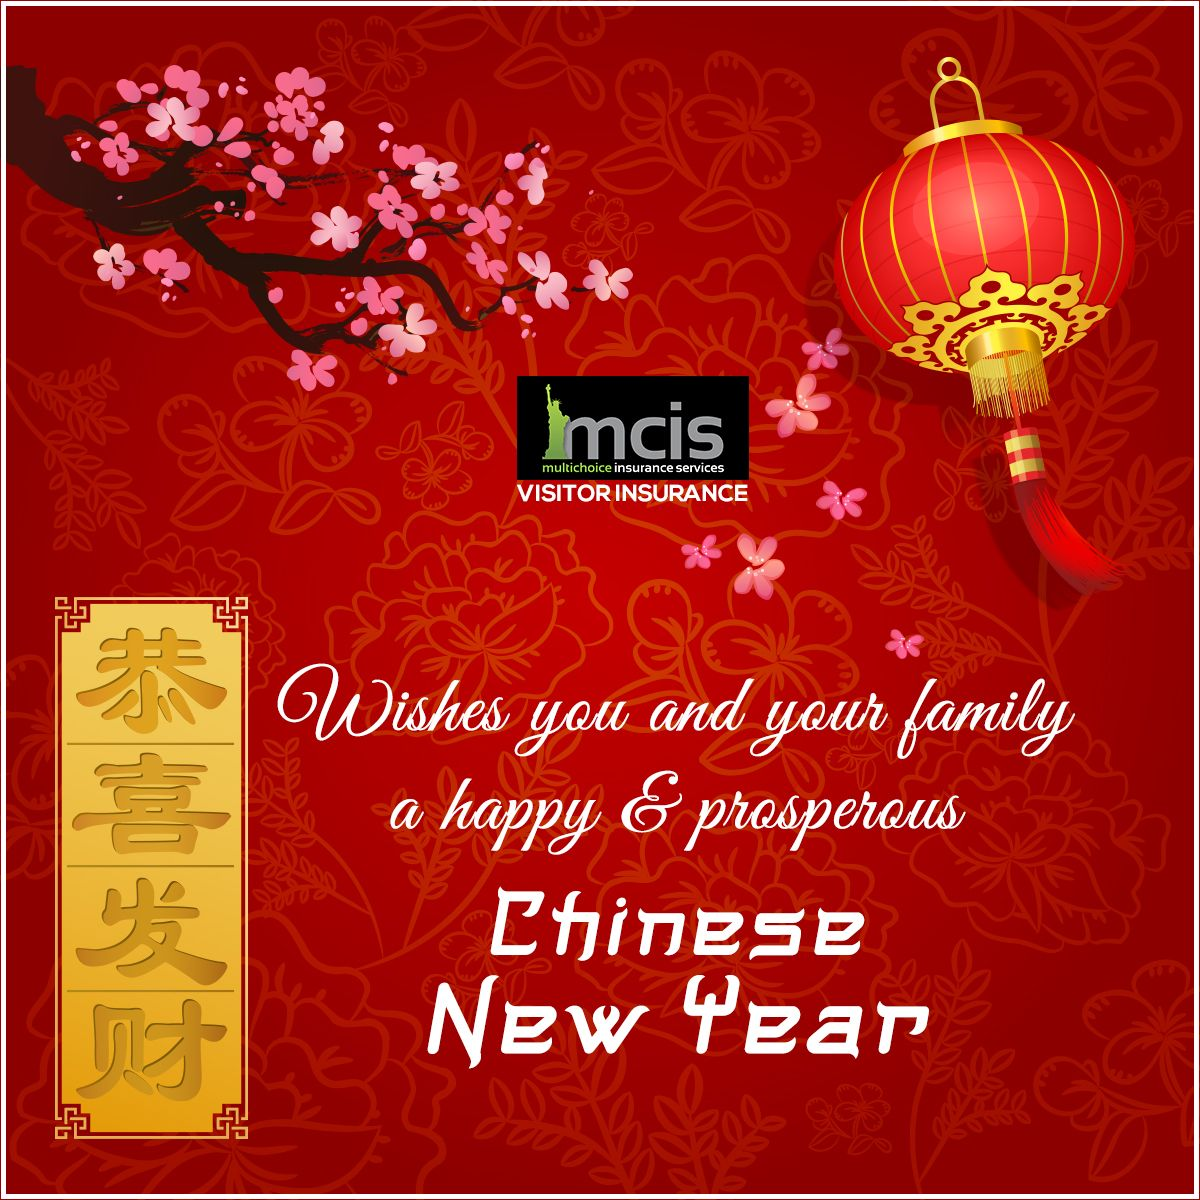 We, at MCIS wish everyone a ChineseNewYear filled with